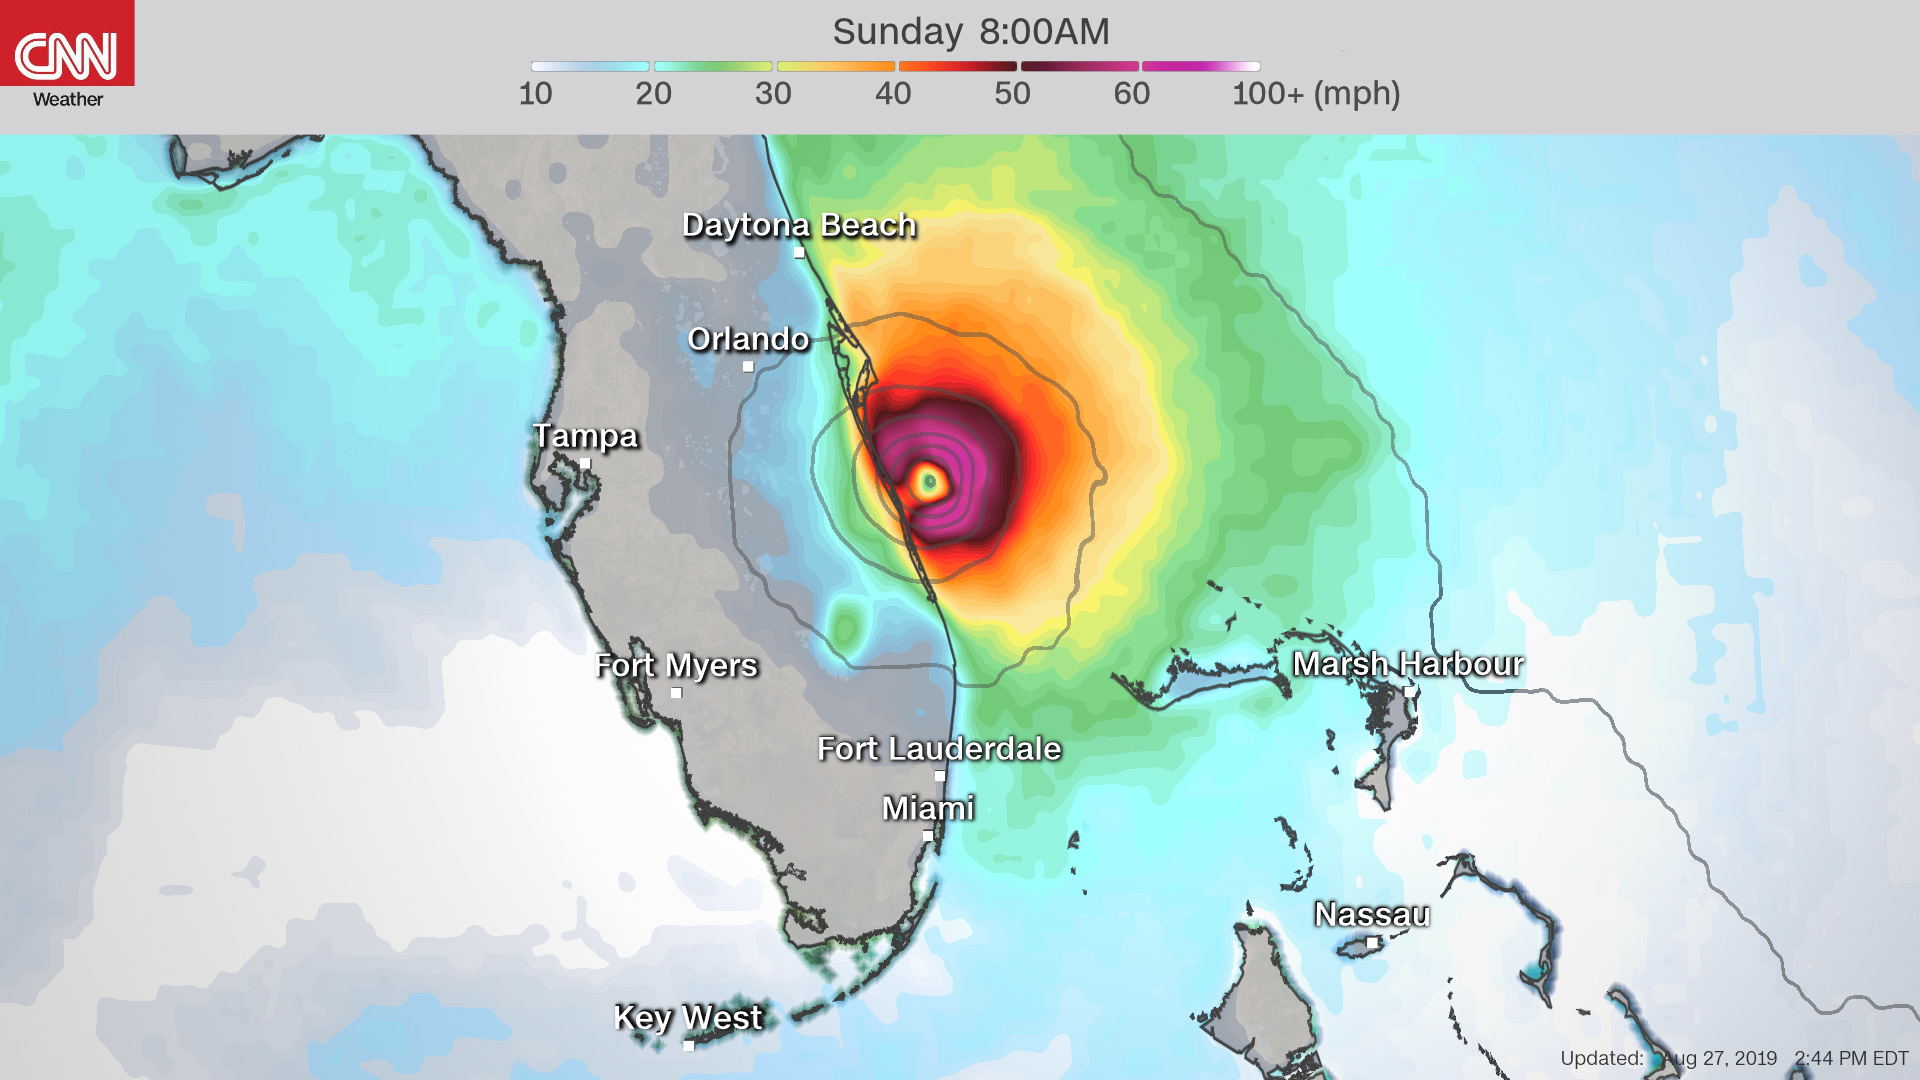 Forecast winds from the European model show hurricane-force winds impacting Florida on Sunday morning.